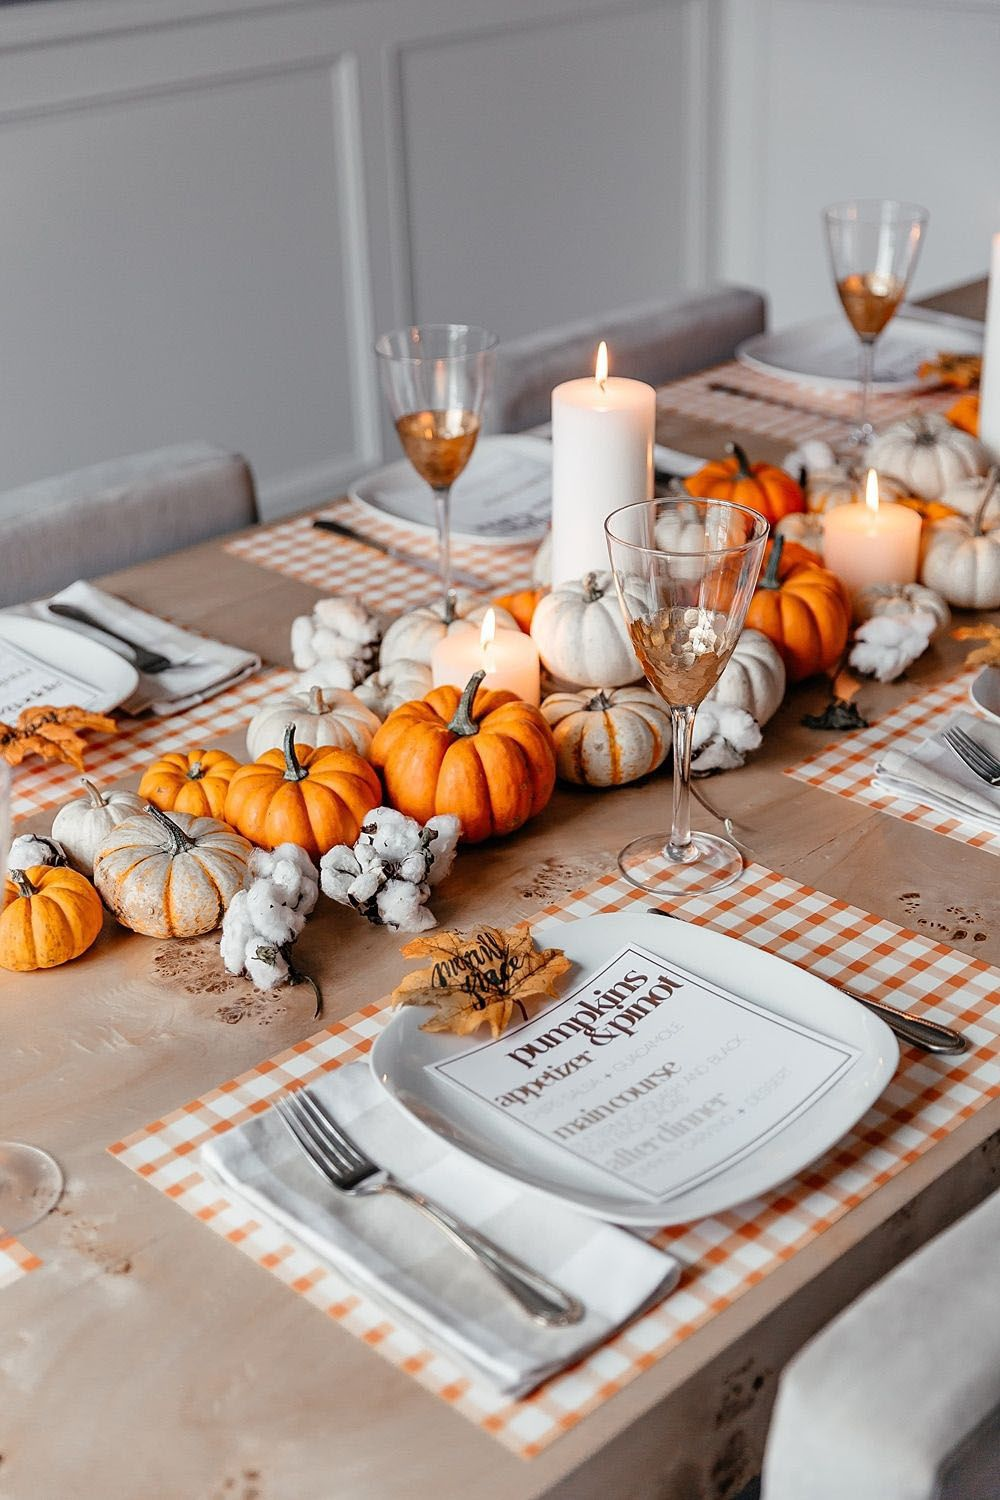 Ways To Decorate A Square Dining Room Table Sets 8 To Refresh Your Home Thanksgiving Table Decorations Fall Table Decor Thanksgiving Decorations Diy